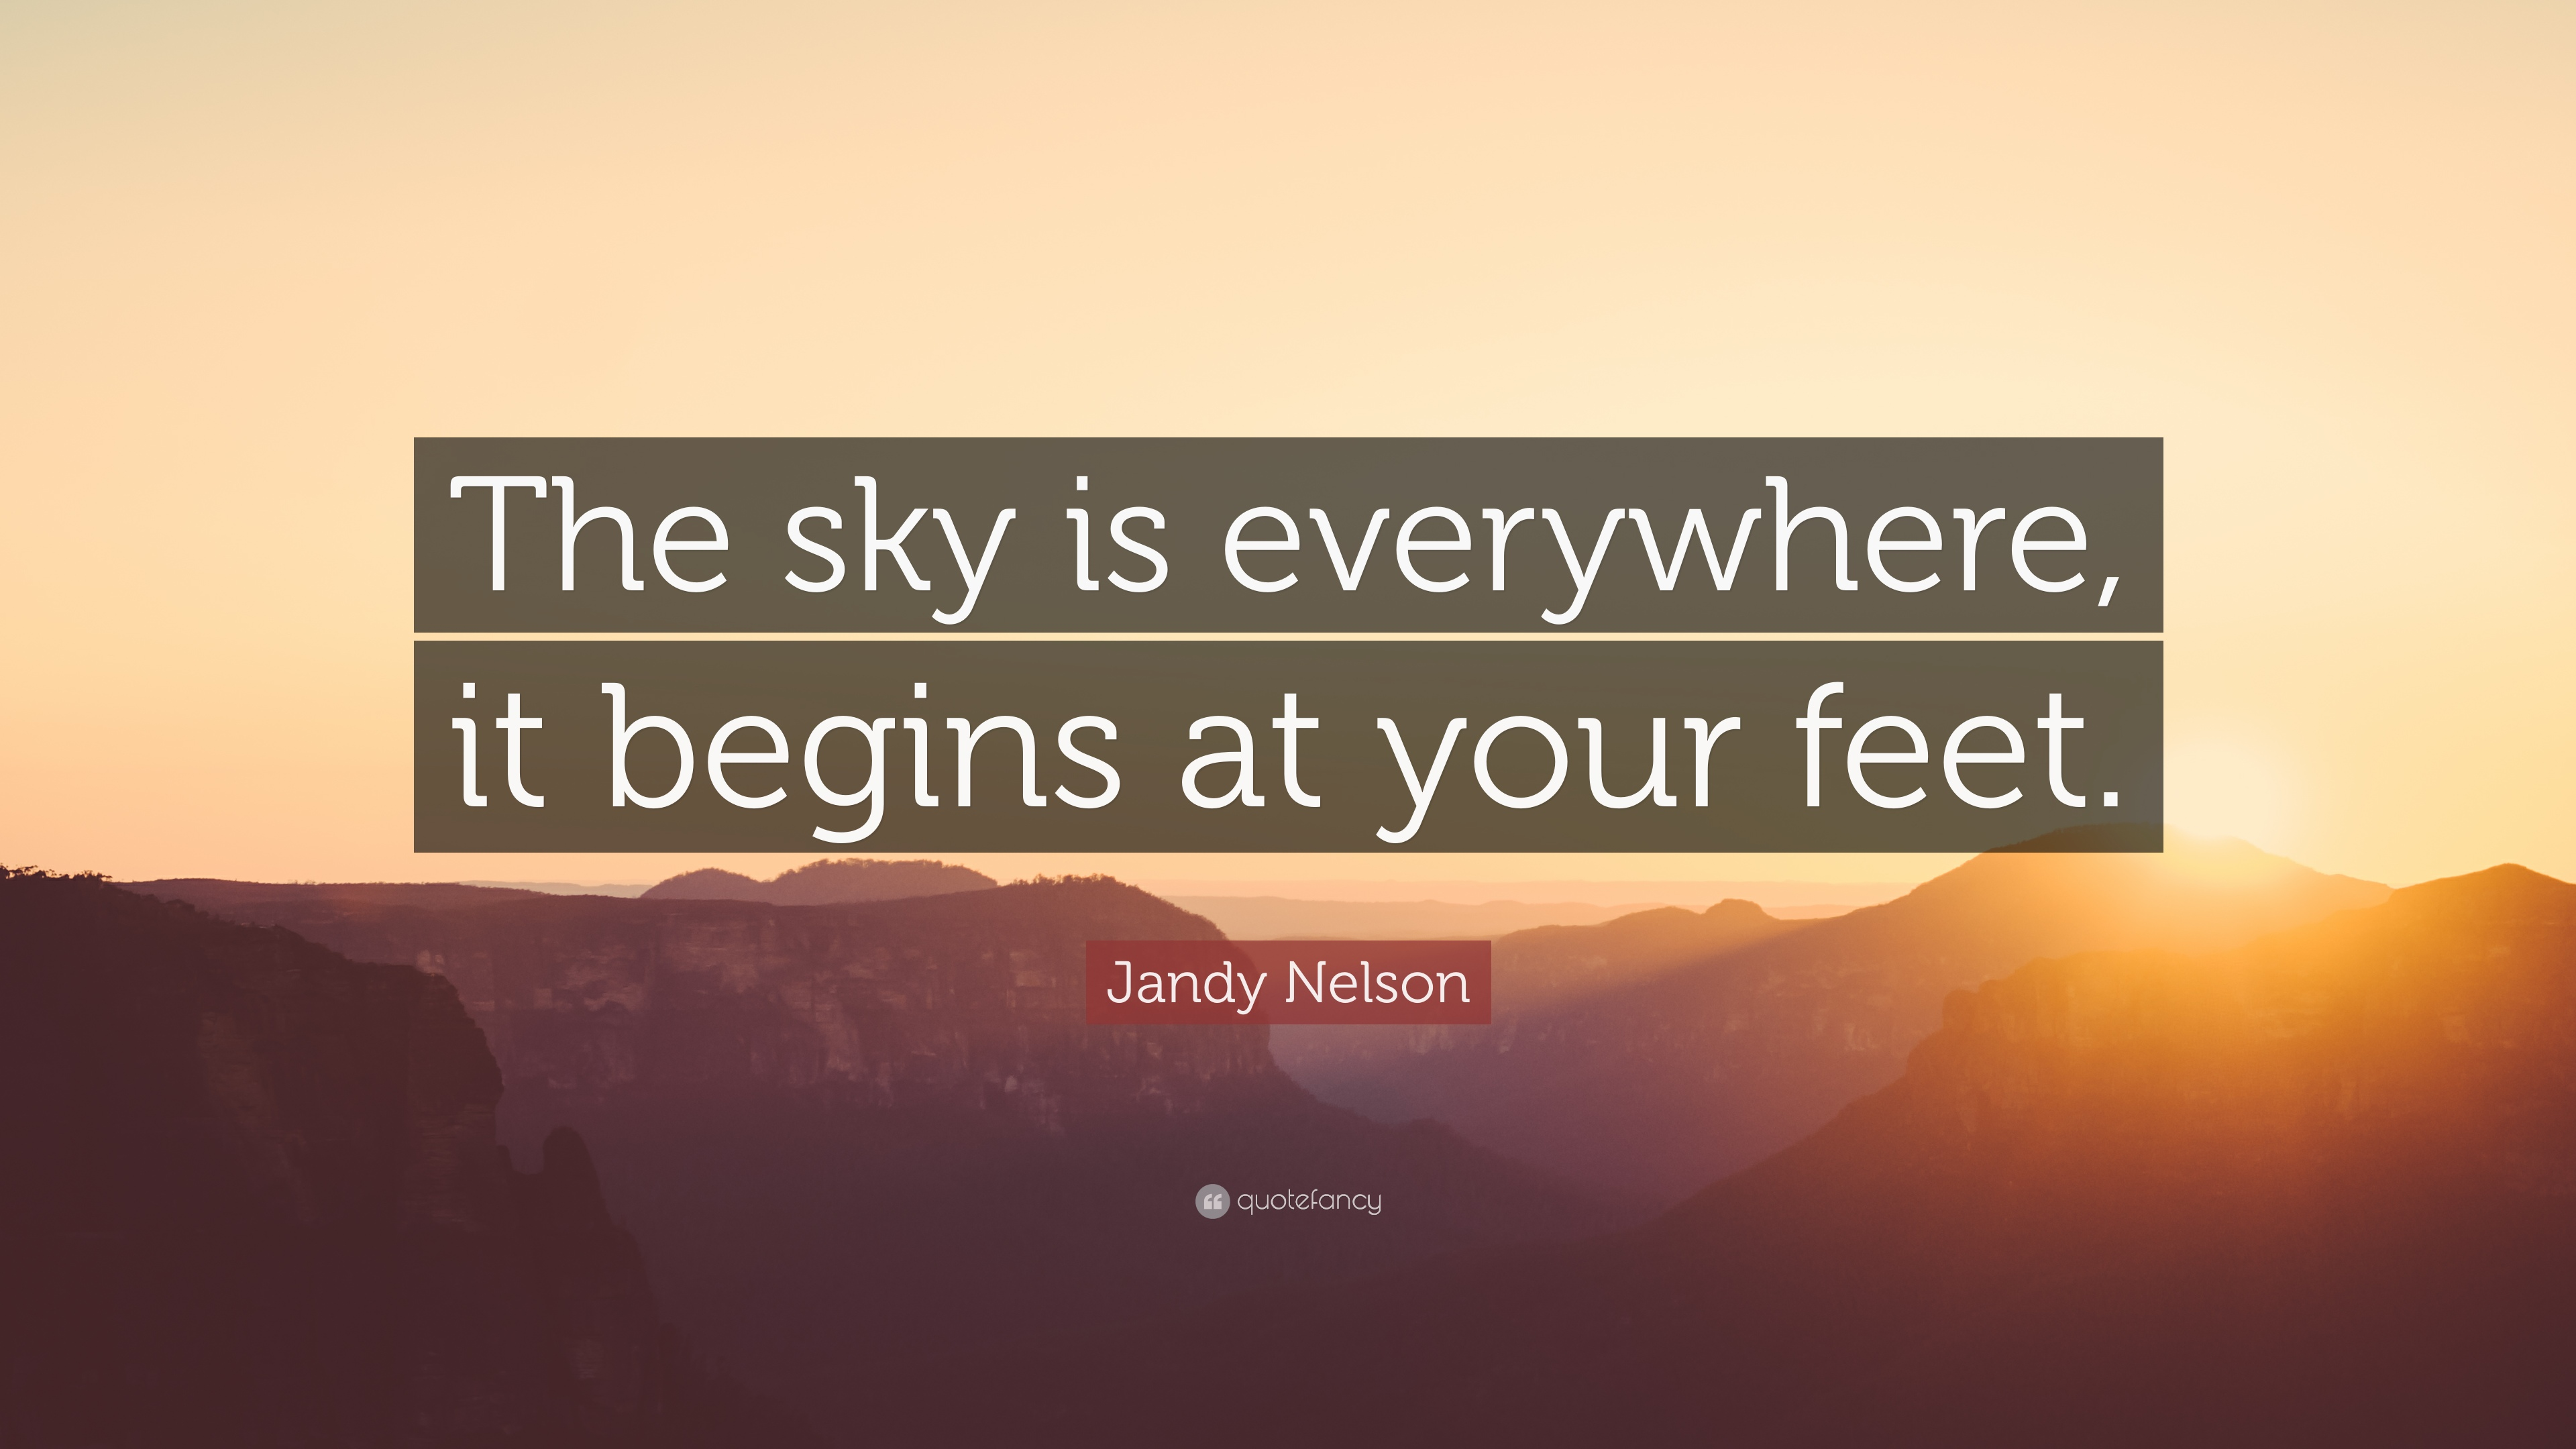 jandy nelson the sky is everywhere pdf